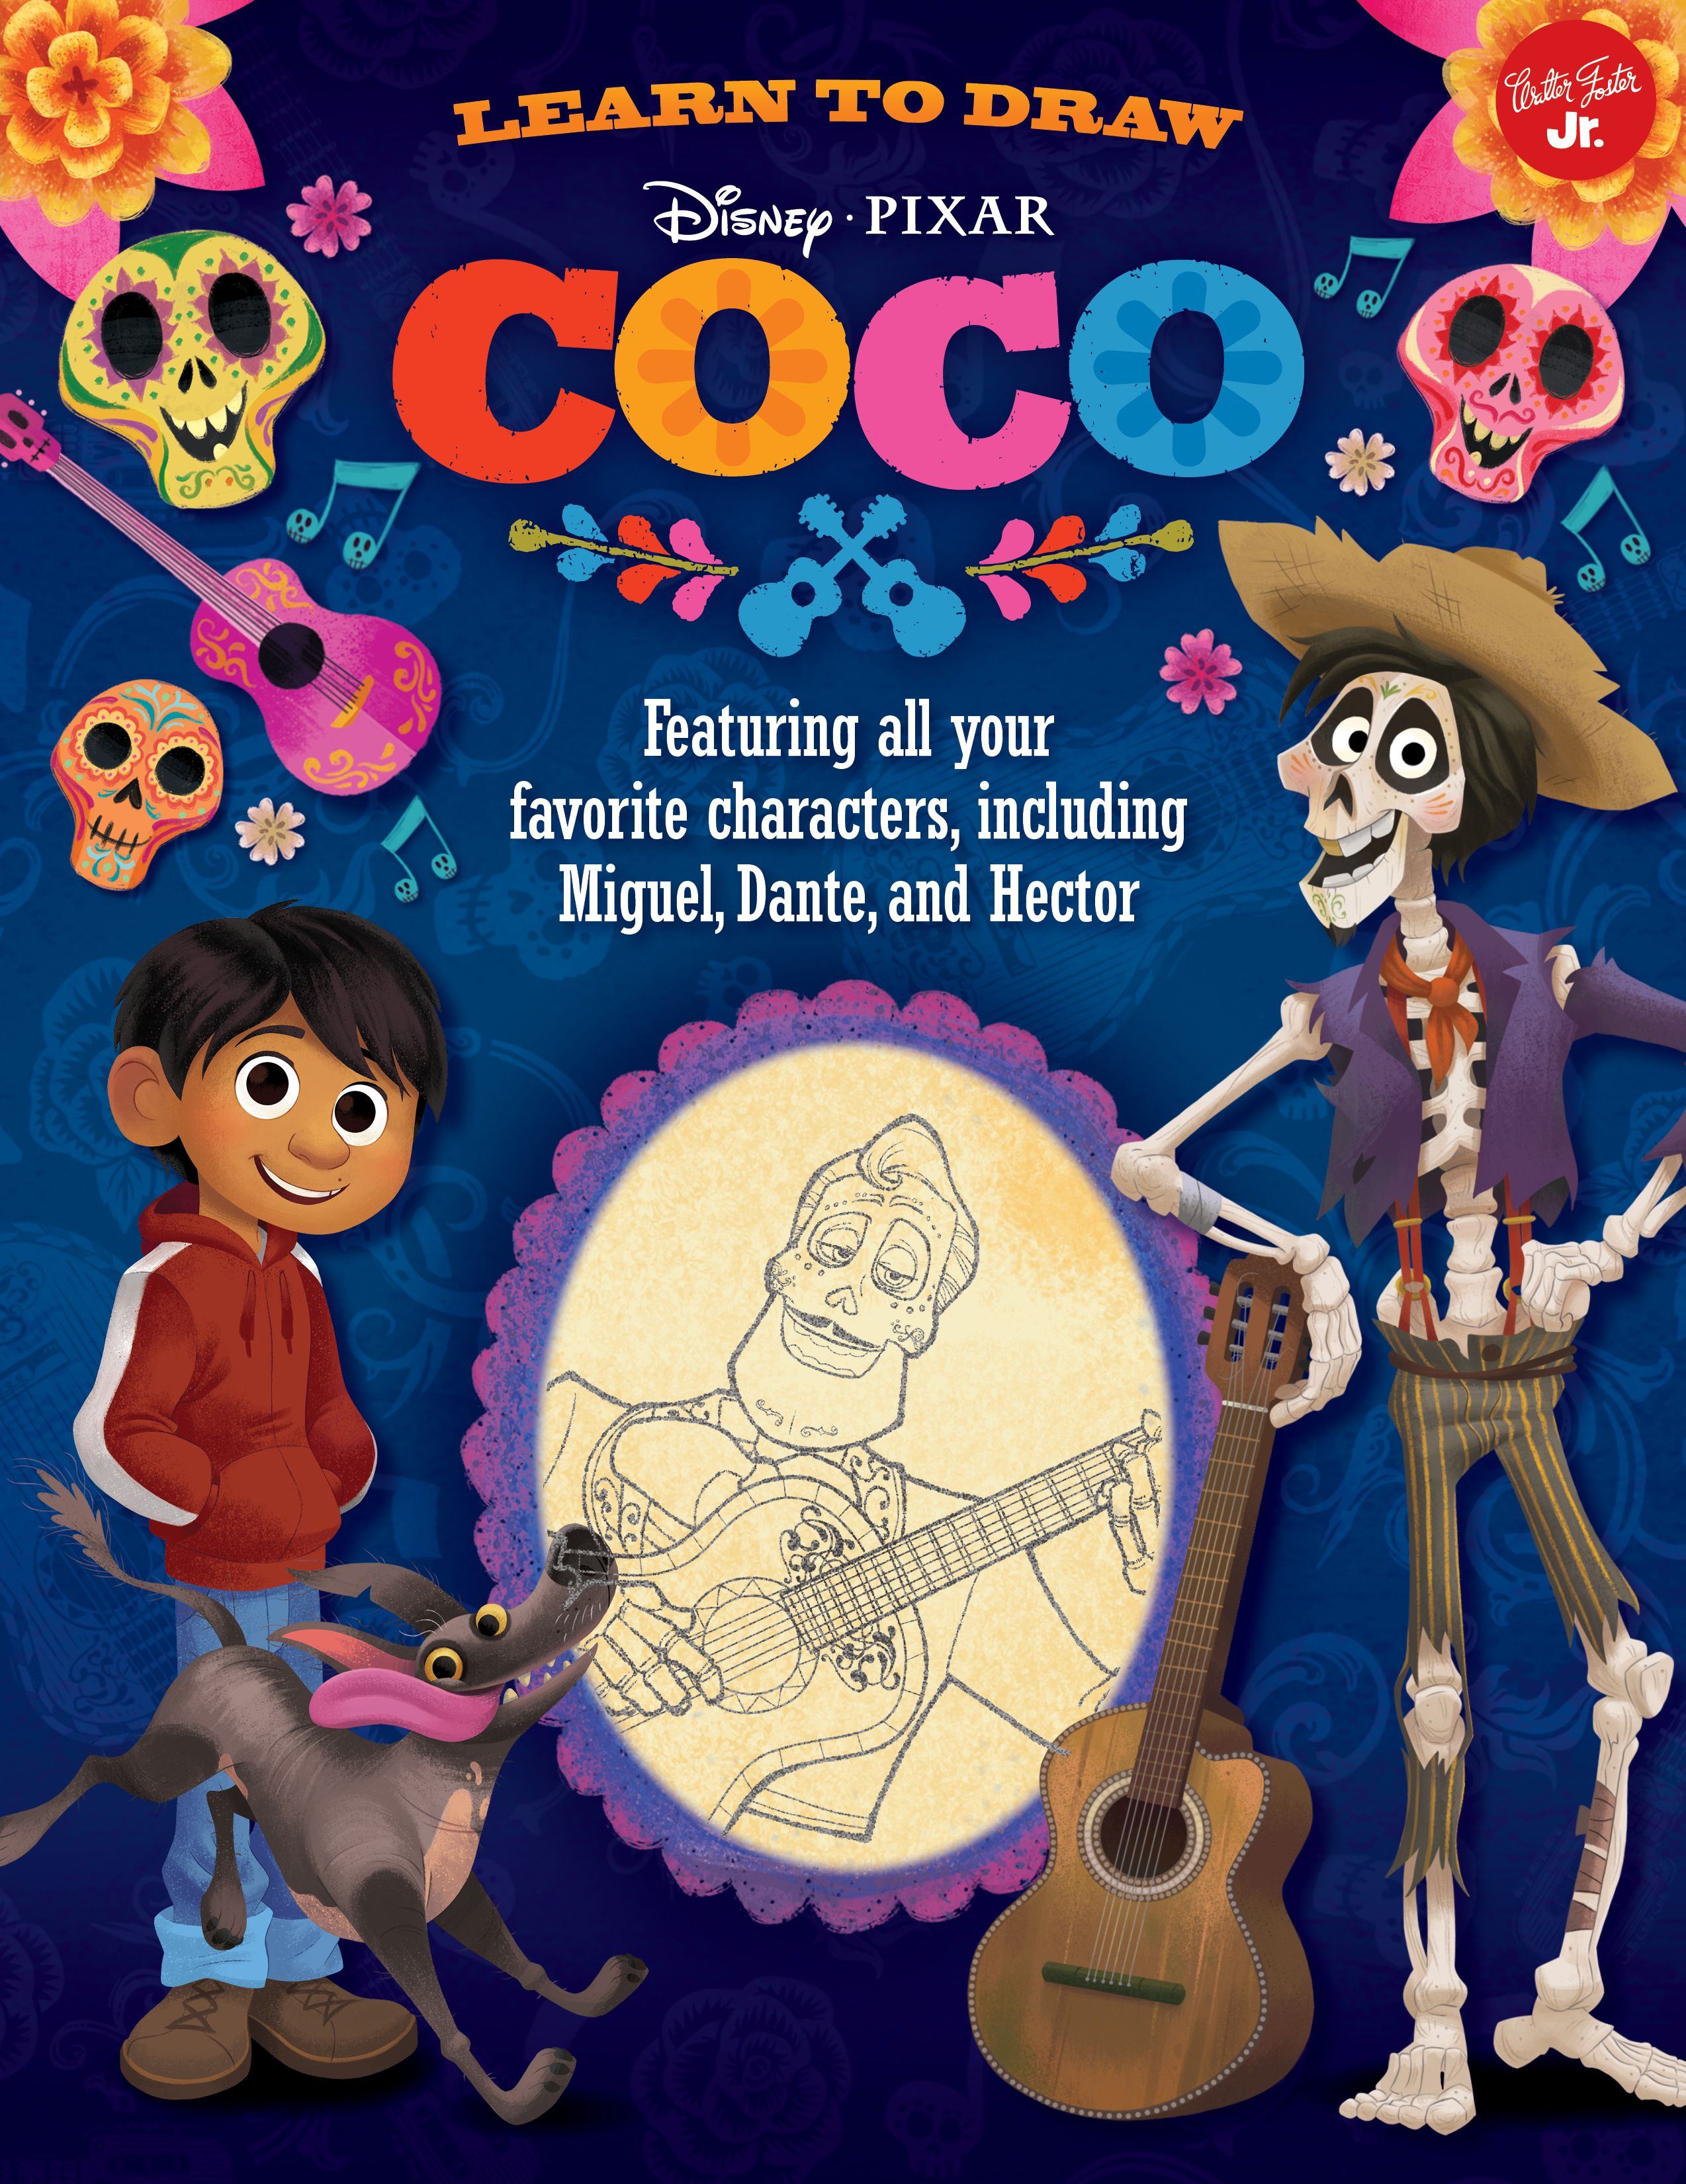 Learn To Draw Disney Pixar Coco Featuring All Your